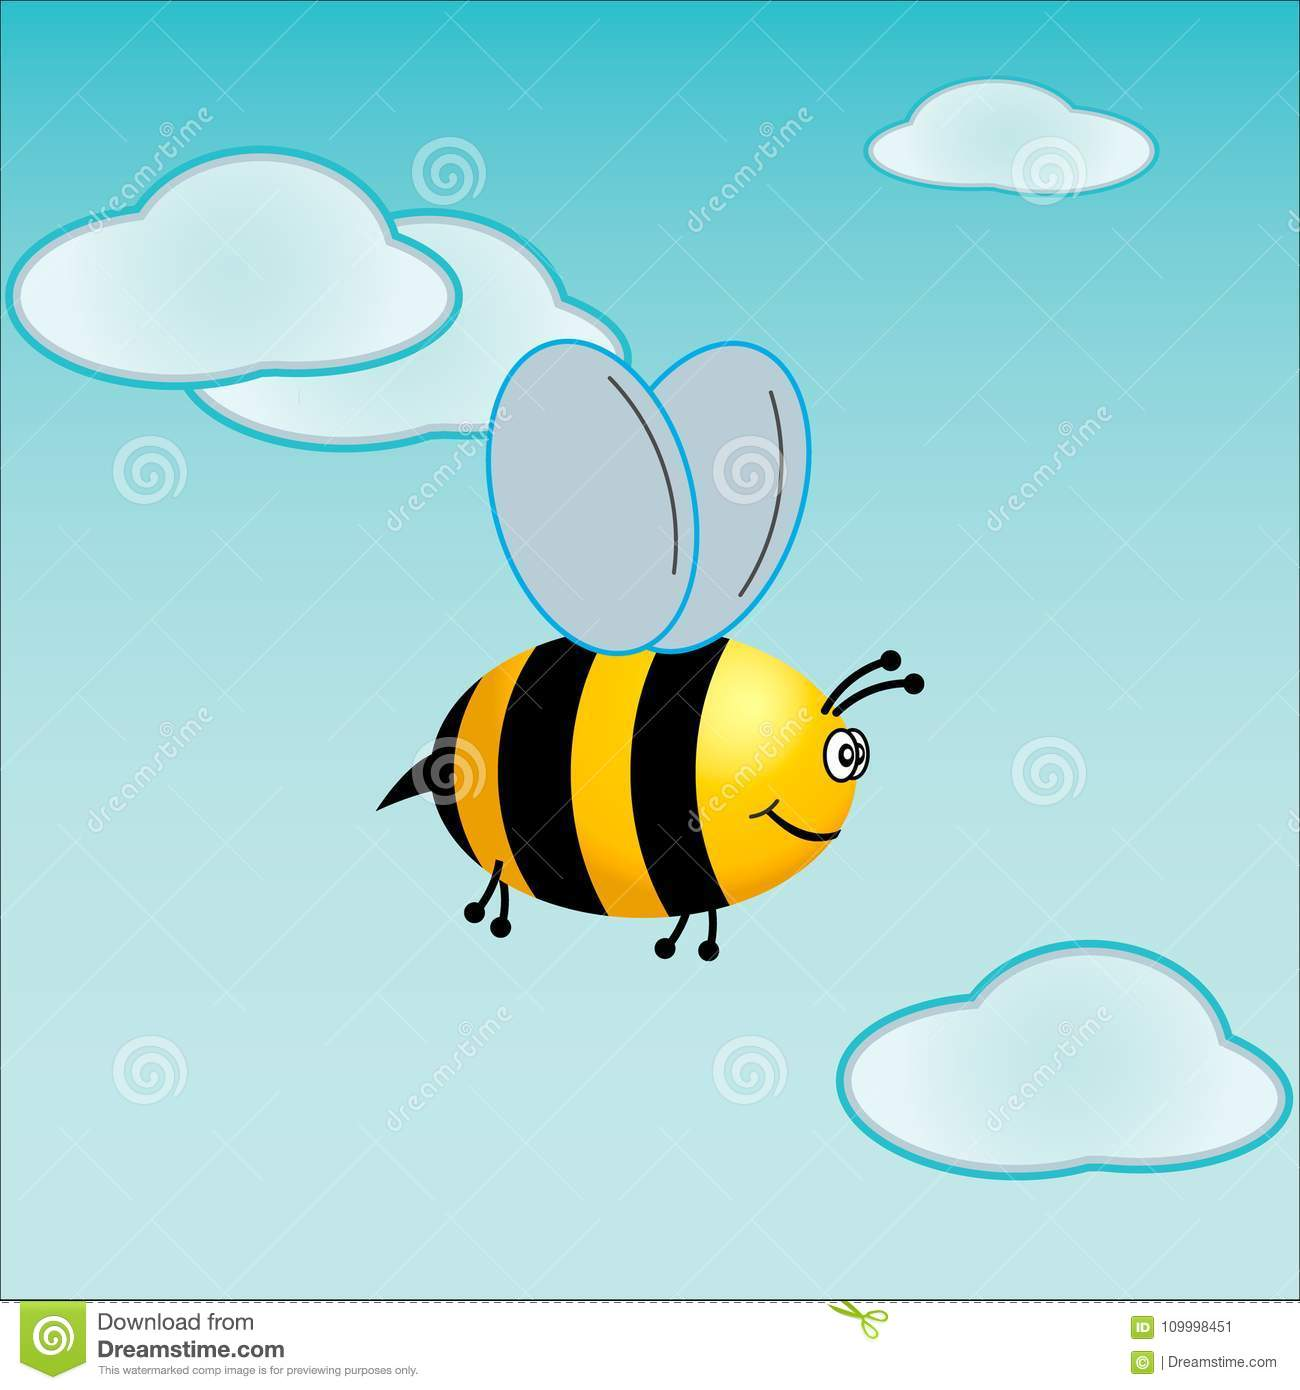 Little bee in the sky